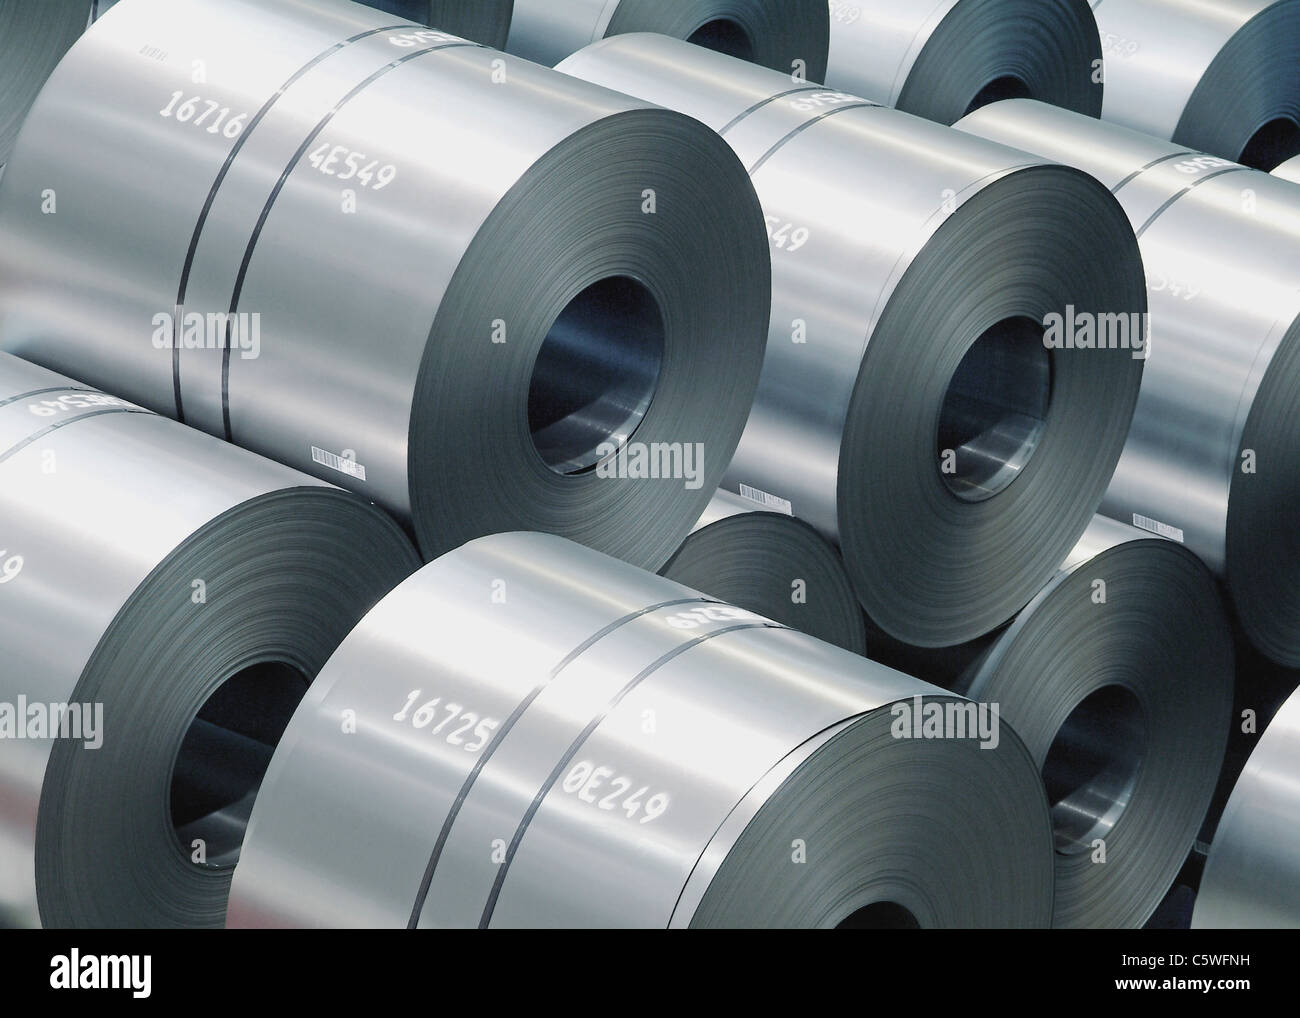 Germany, Stack of large rolls of sheet metal - Stock Image